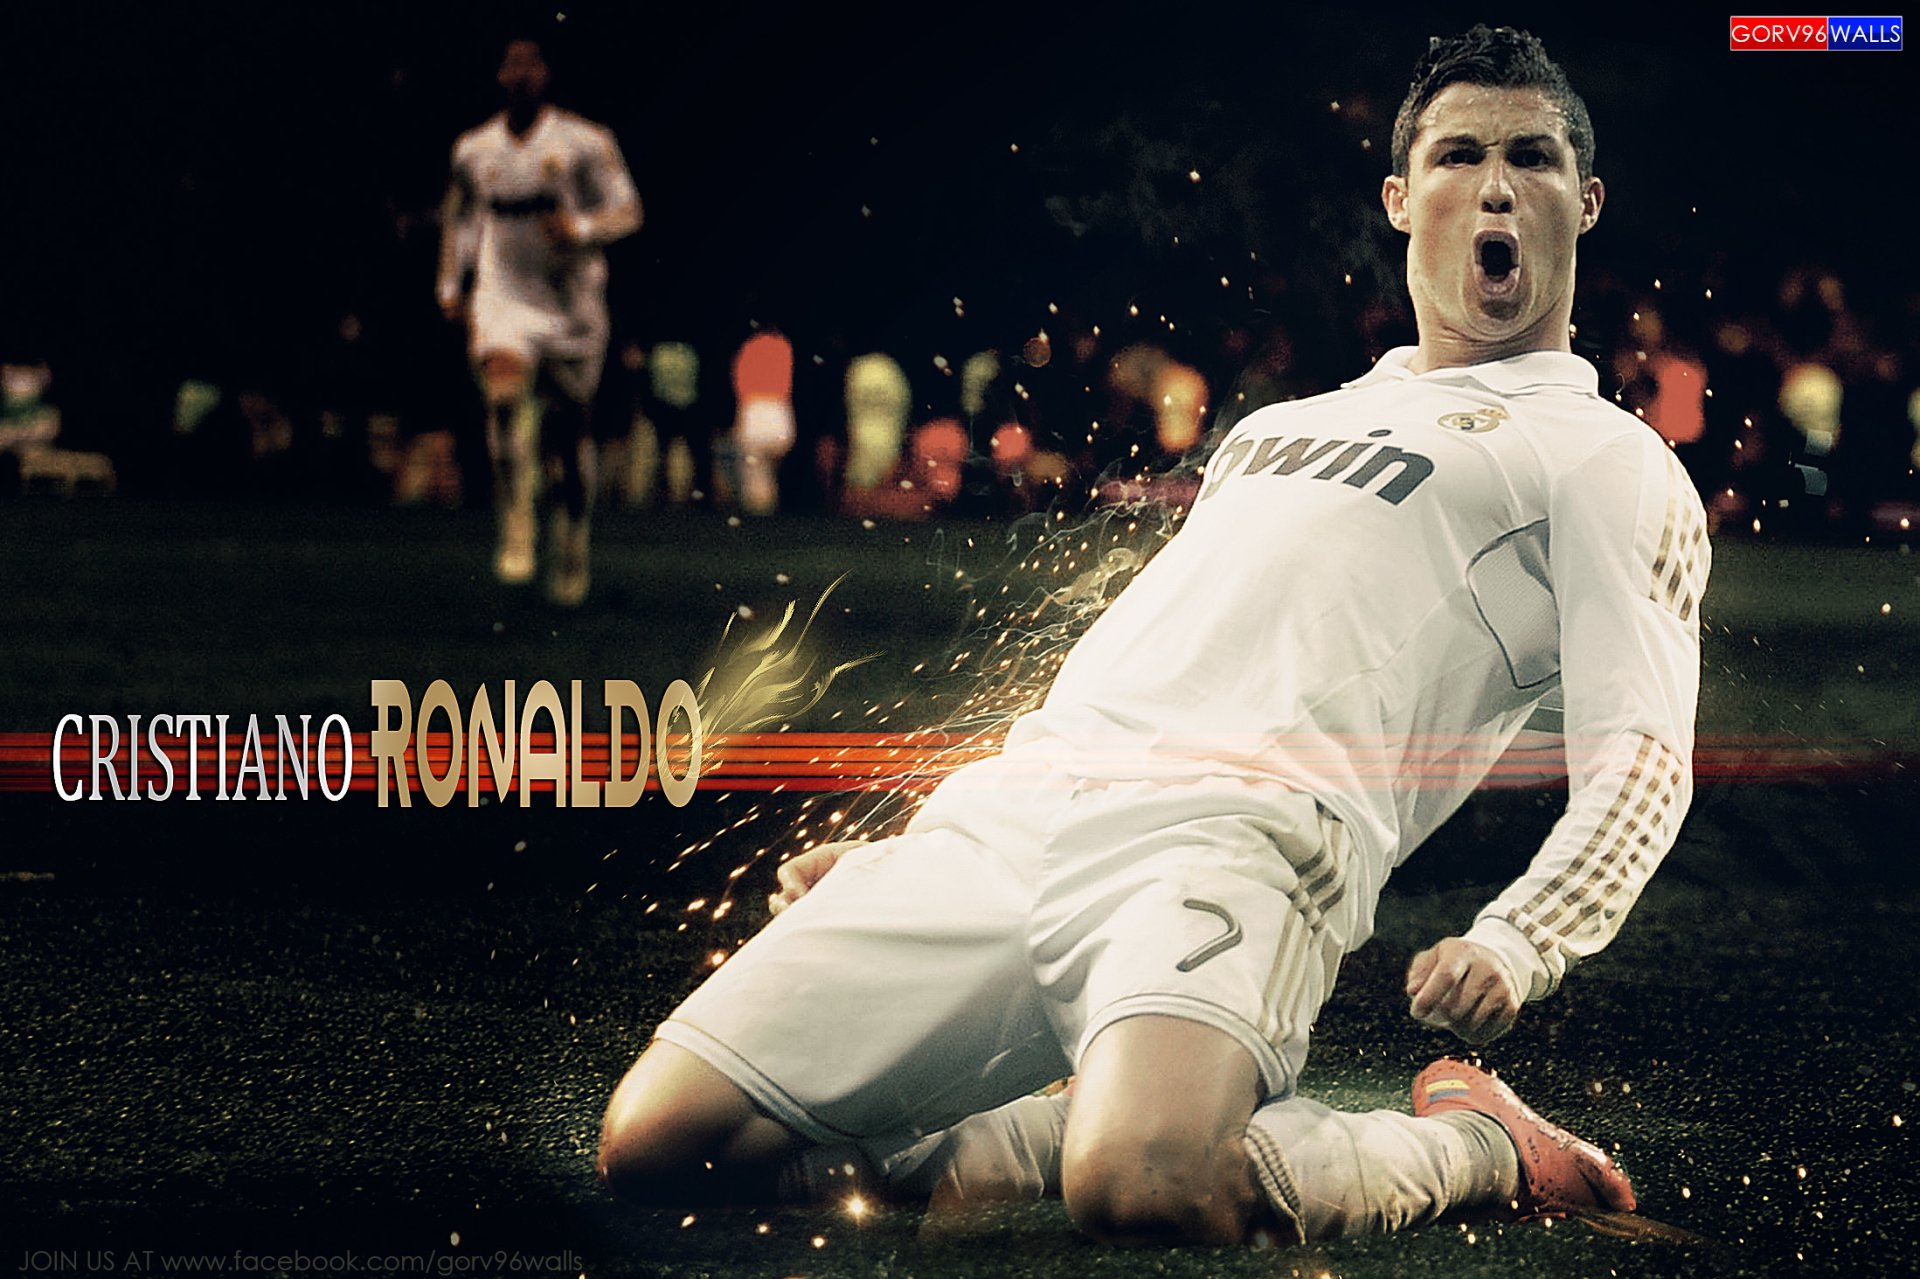 Art Of Cristiano Ronaldo Fans Wallpaper Sport Soccer: Cristiano Ronaldo HD By GORV96WALLS HD Wallpaper